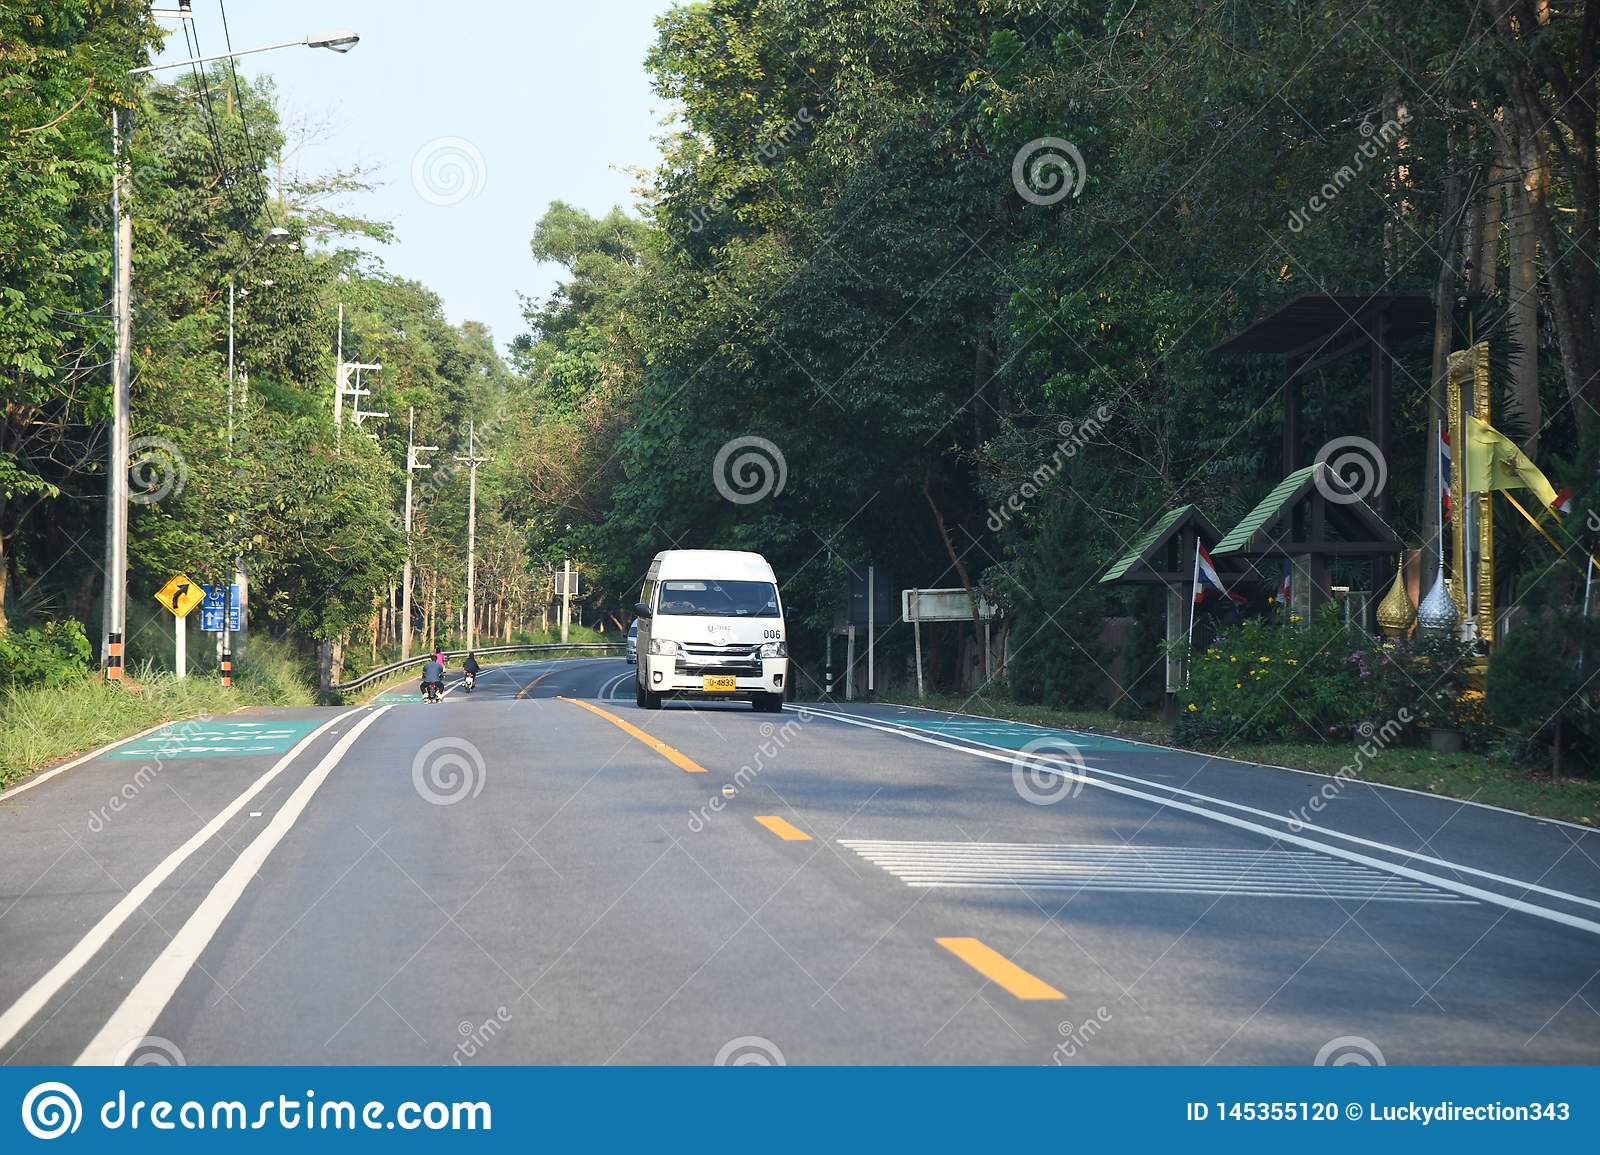 People cars bikes bangkok city highway roads. People cars bikes highway roads bangkok city ,thailand ,february 9th 2019 stock photo